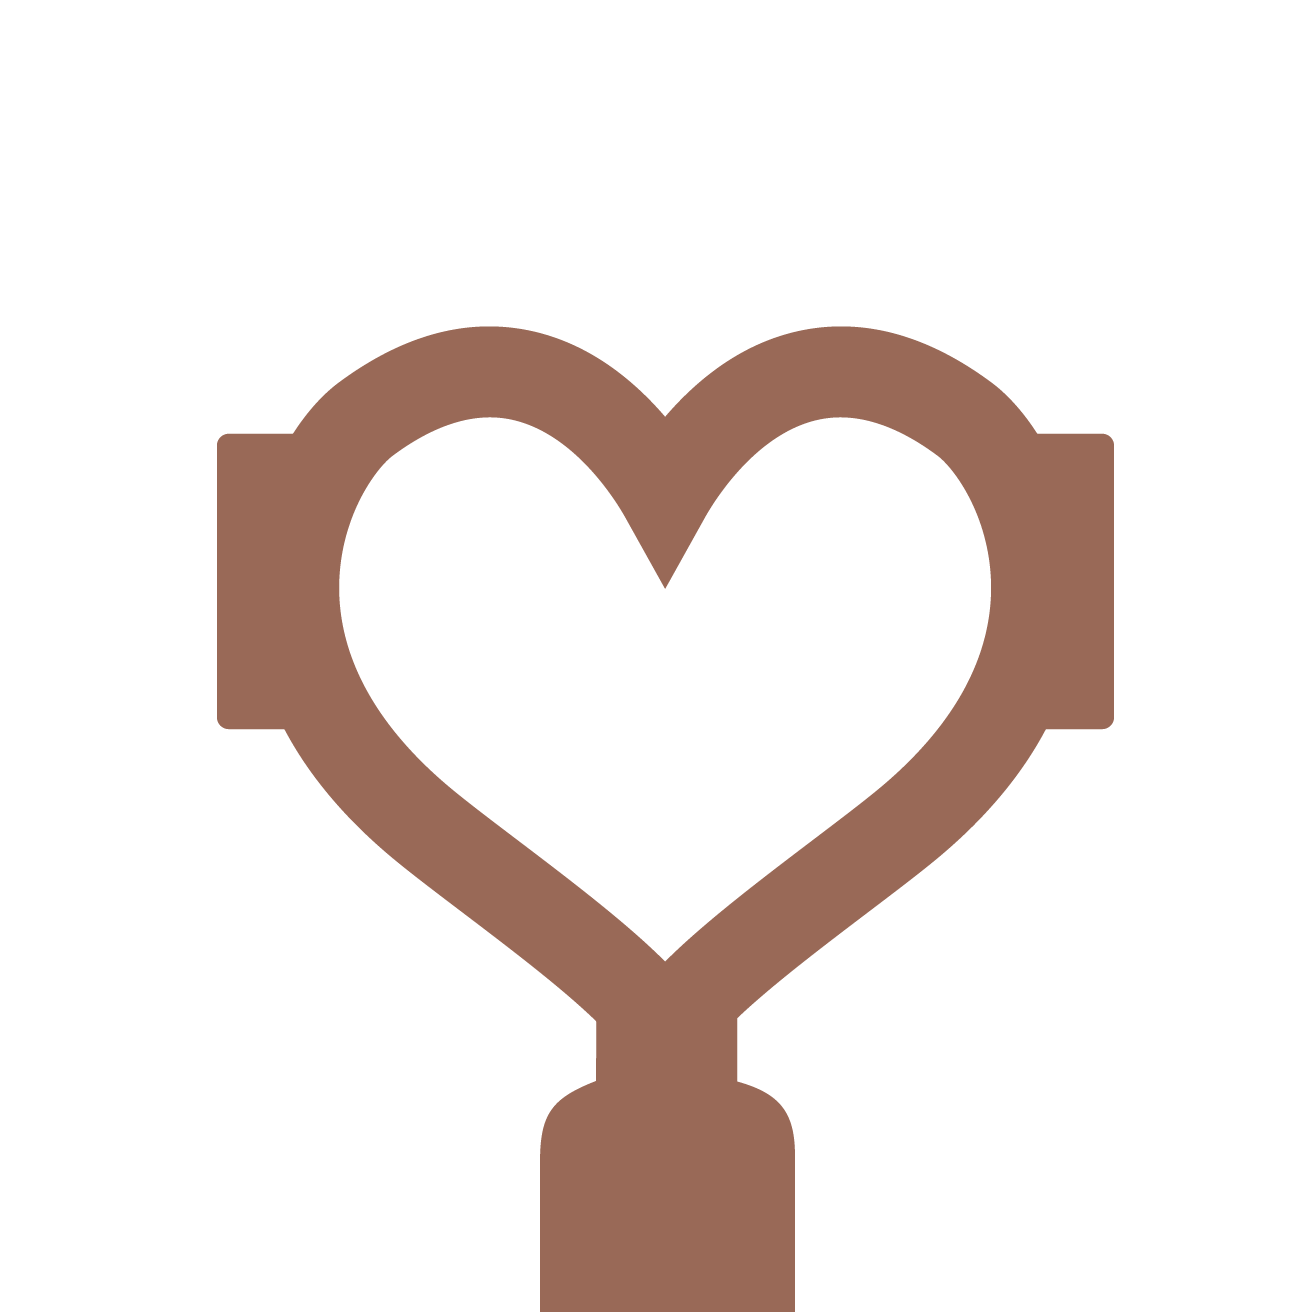 Mazzer Mini E Type A - Espresso Grinder. 64mm Burrs. Single and Double dose timer.